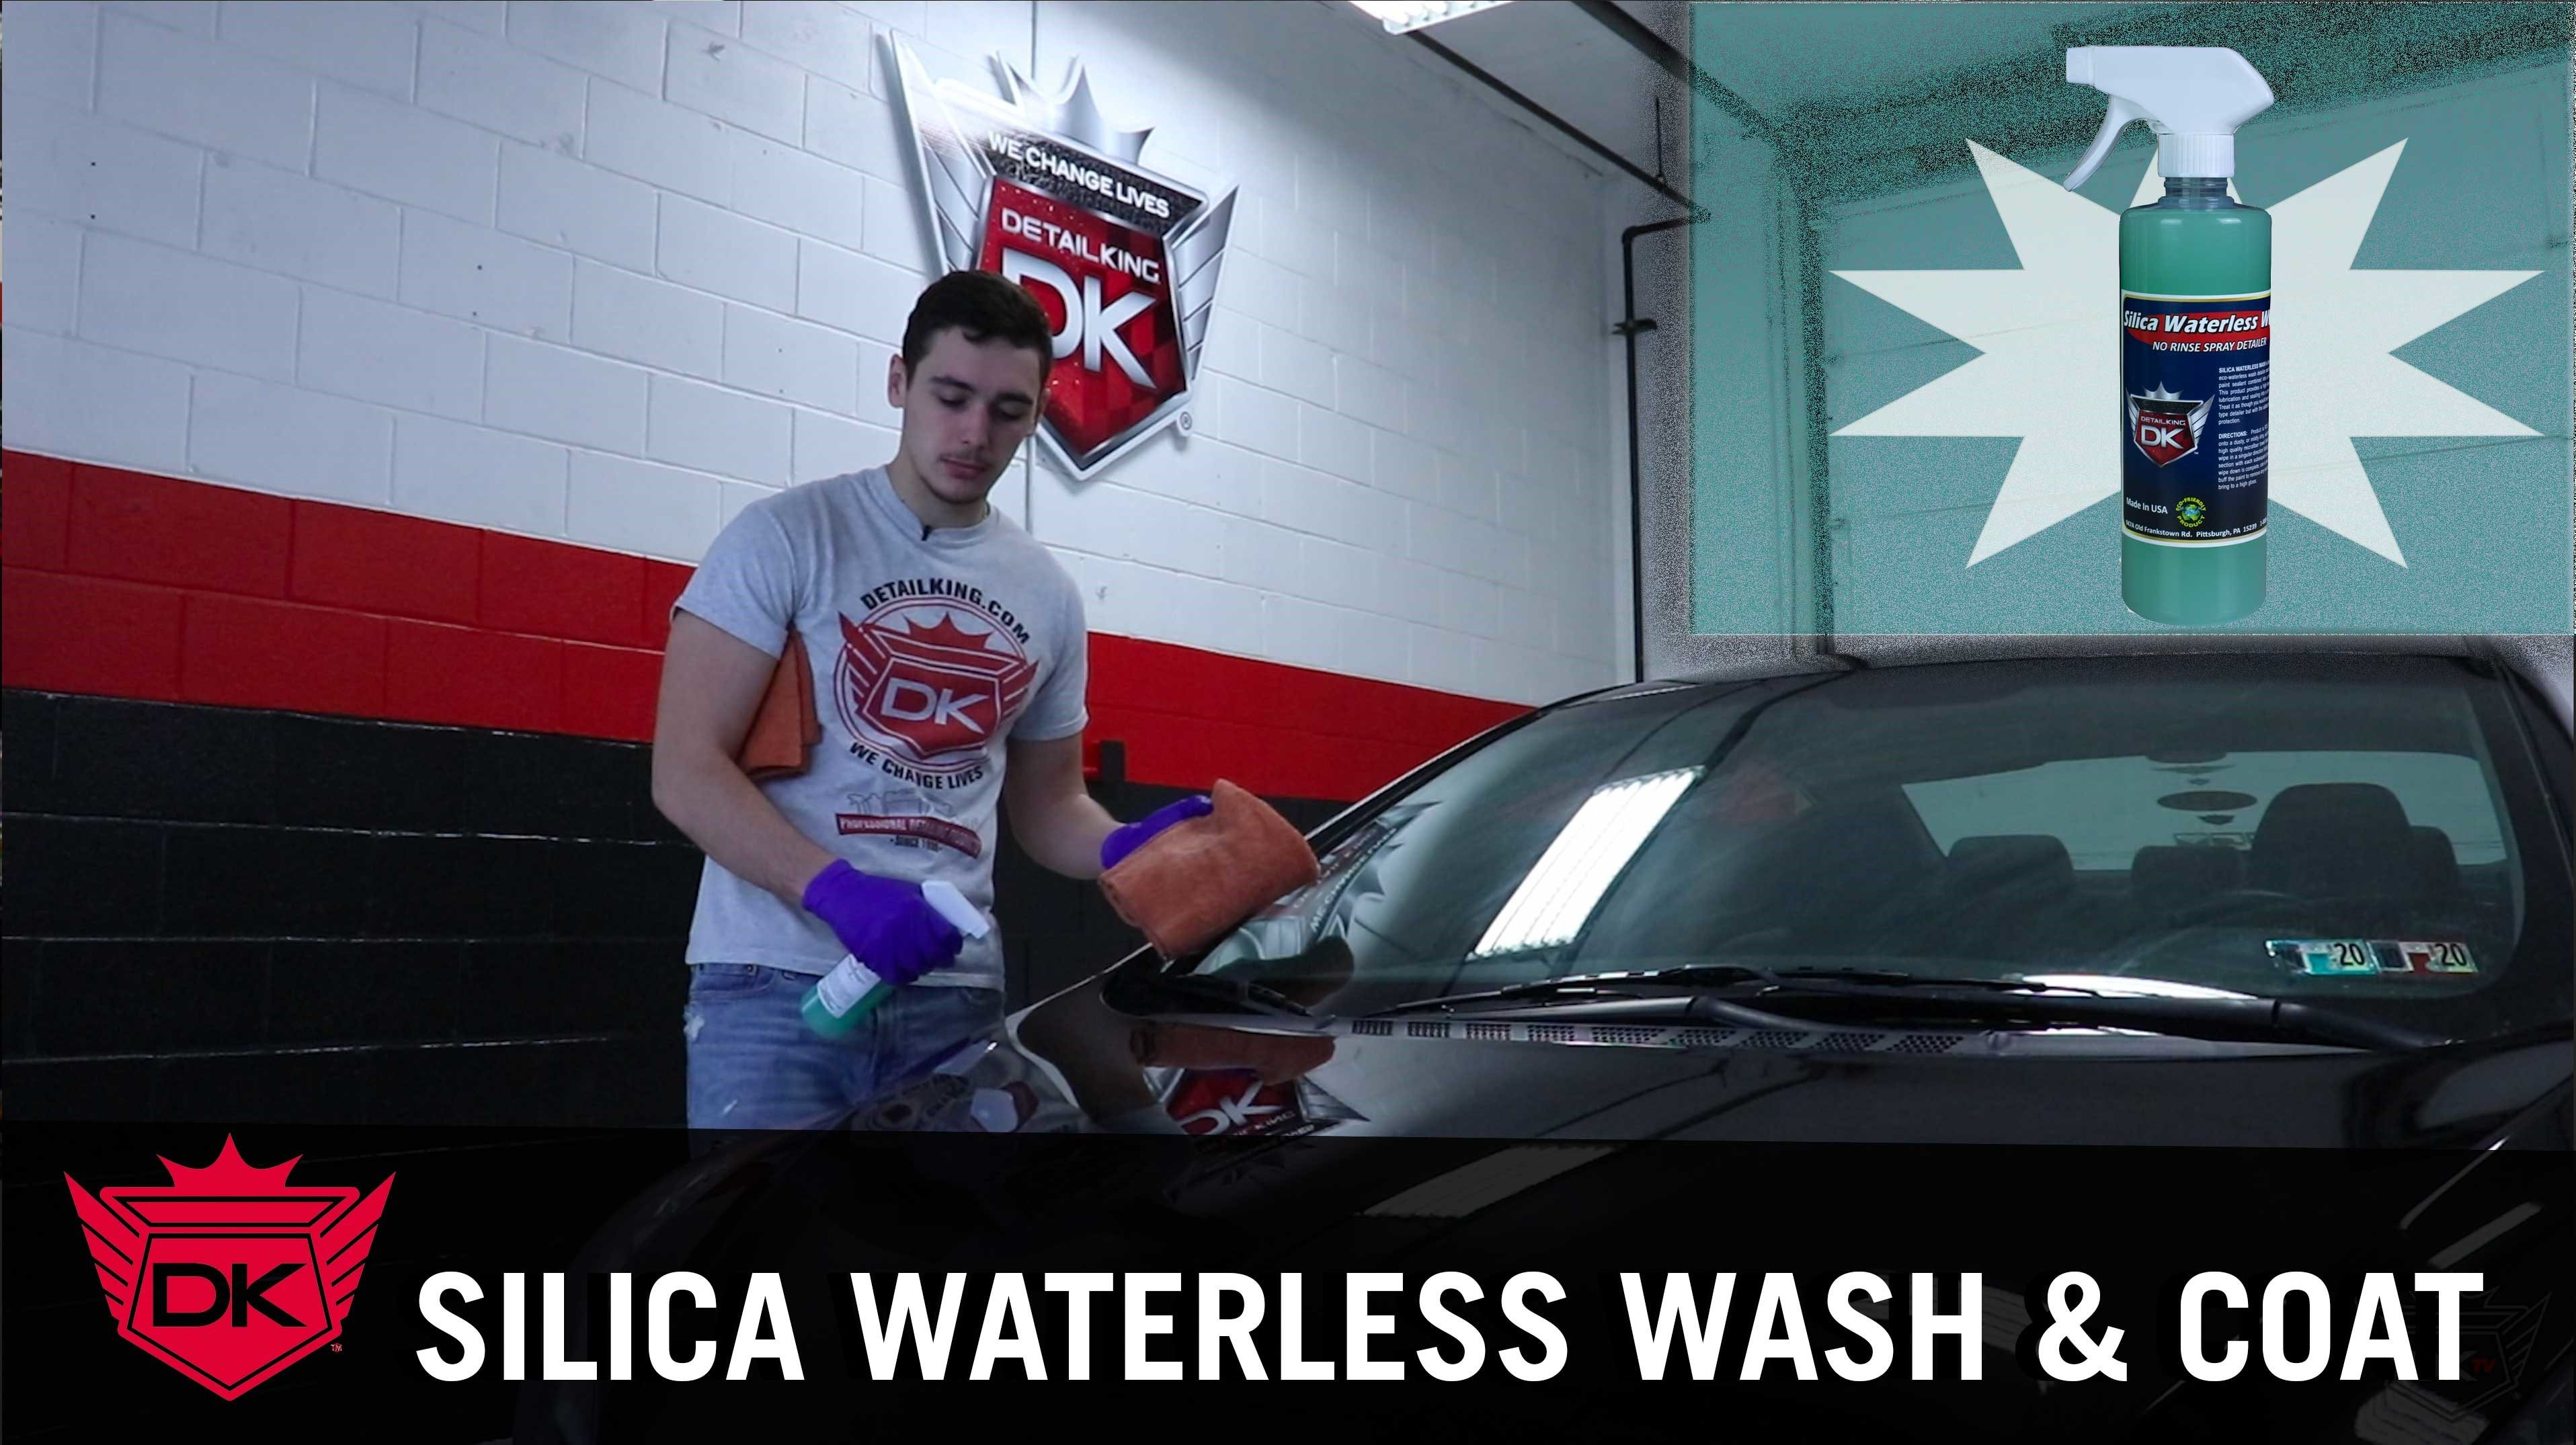 Silica Waterless Wash and Coat Video